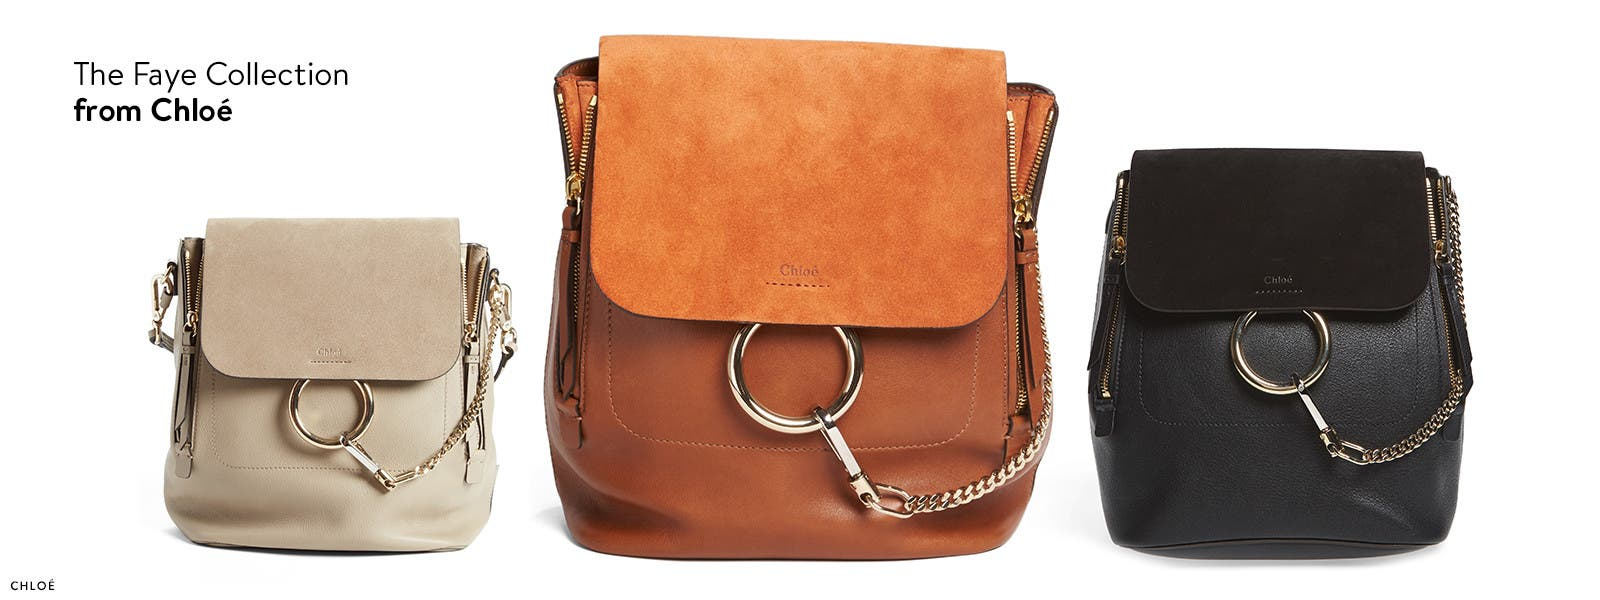 The Faye designer handbag collection by Chloe.